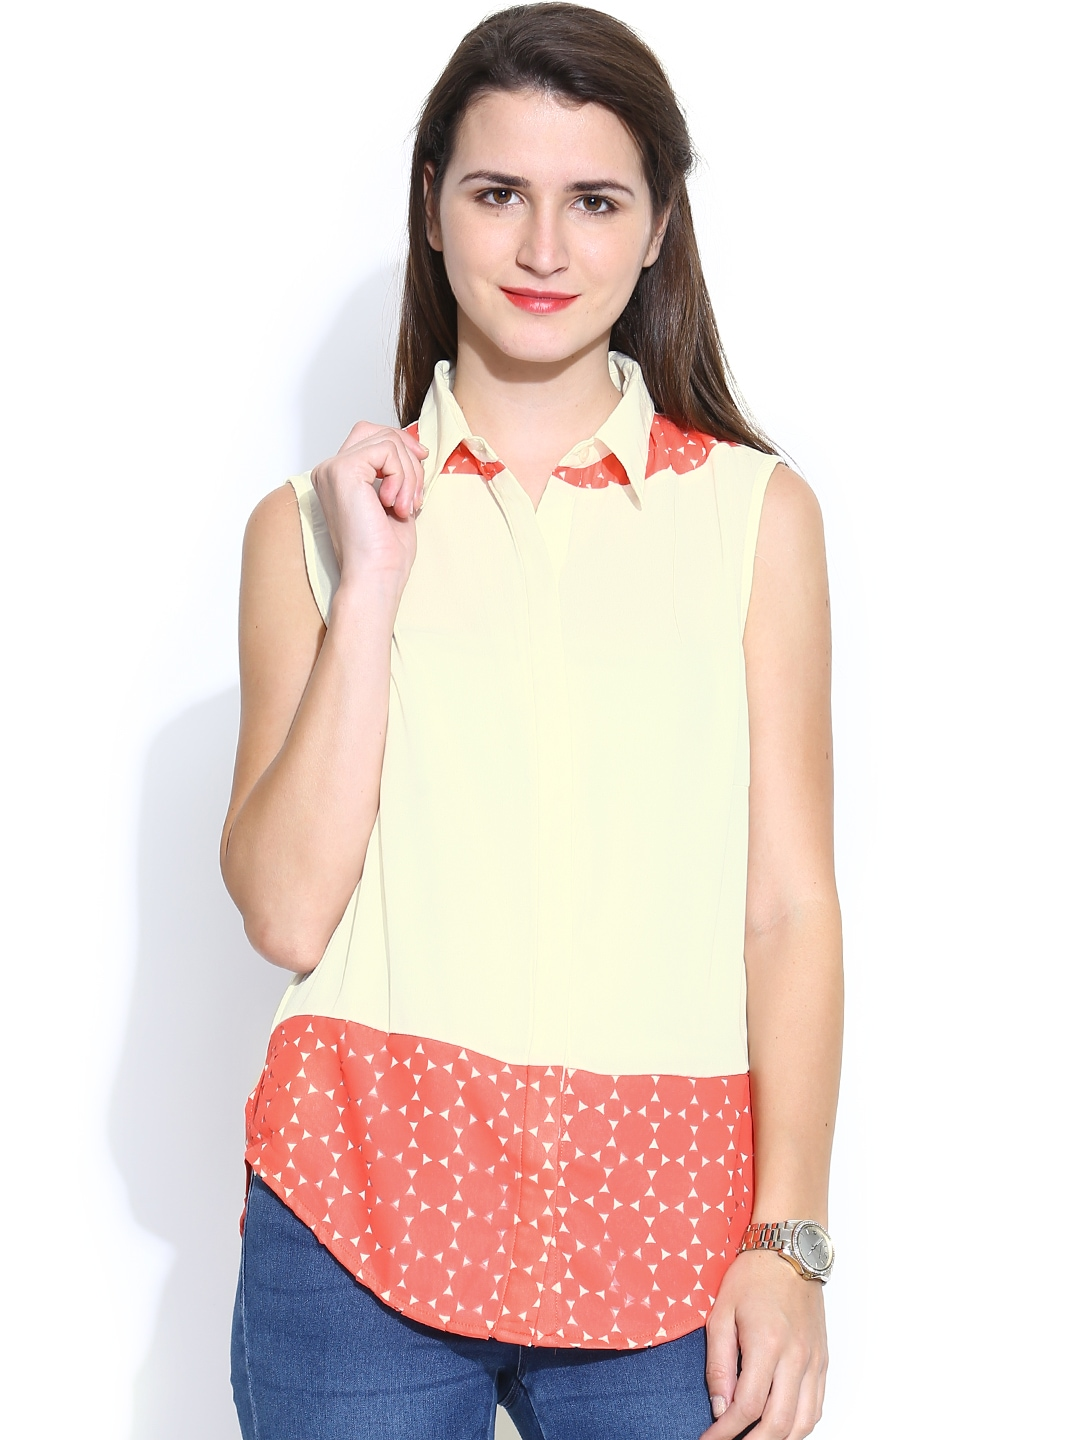 Myntra madame coral pink tuck shirt 870651 buy myntra at for Shirts online shopping lowest price